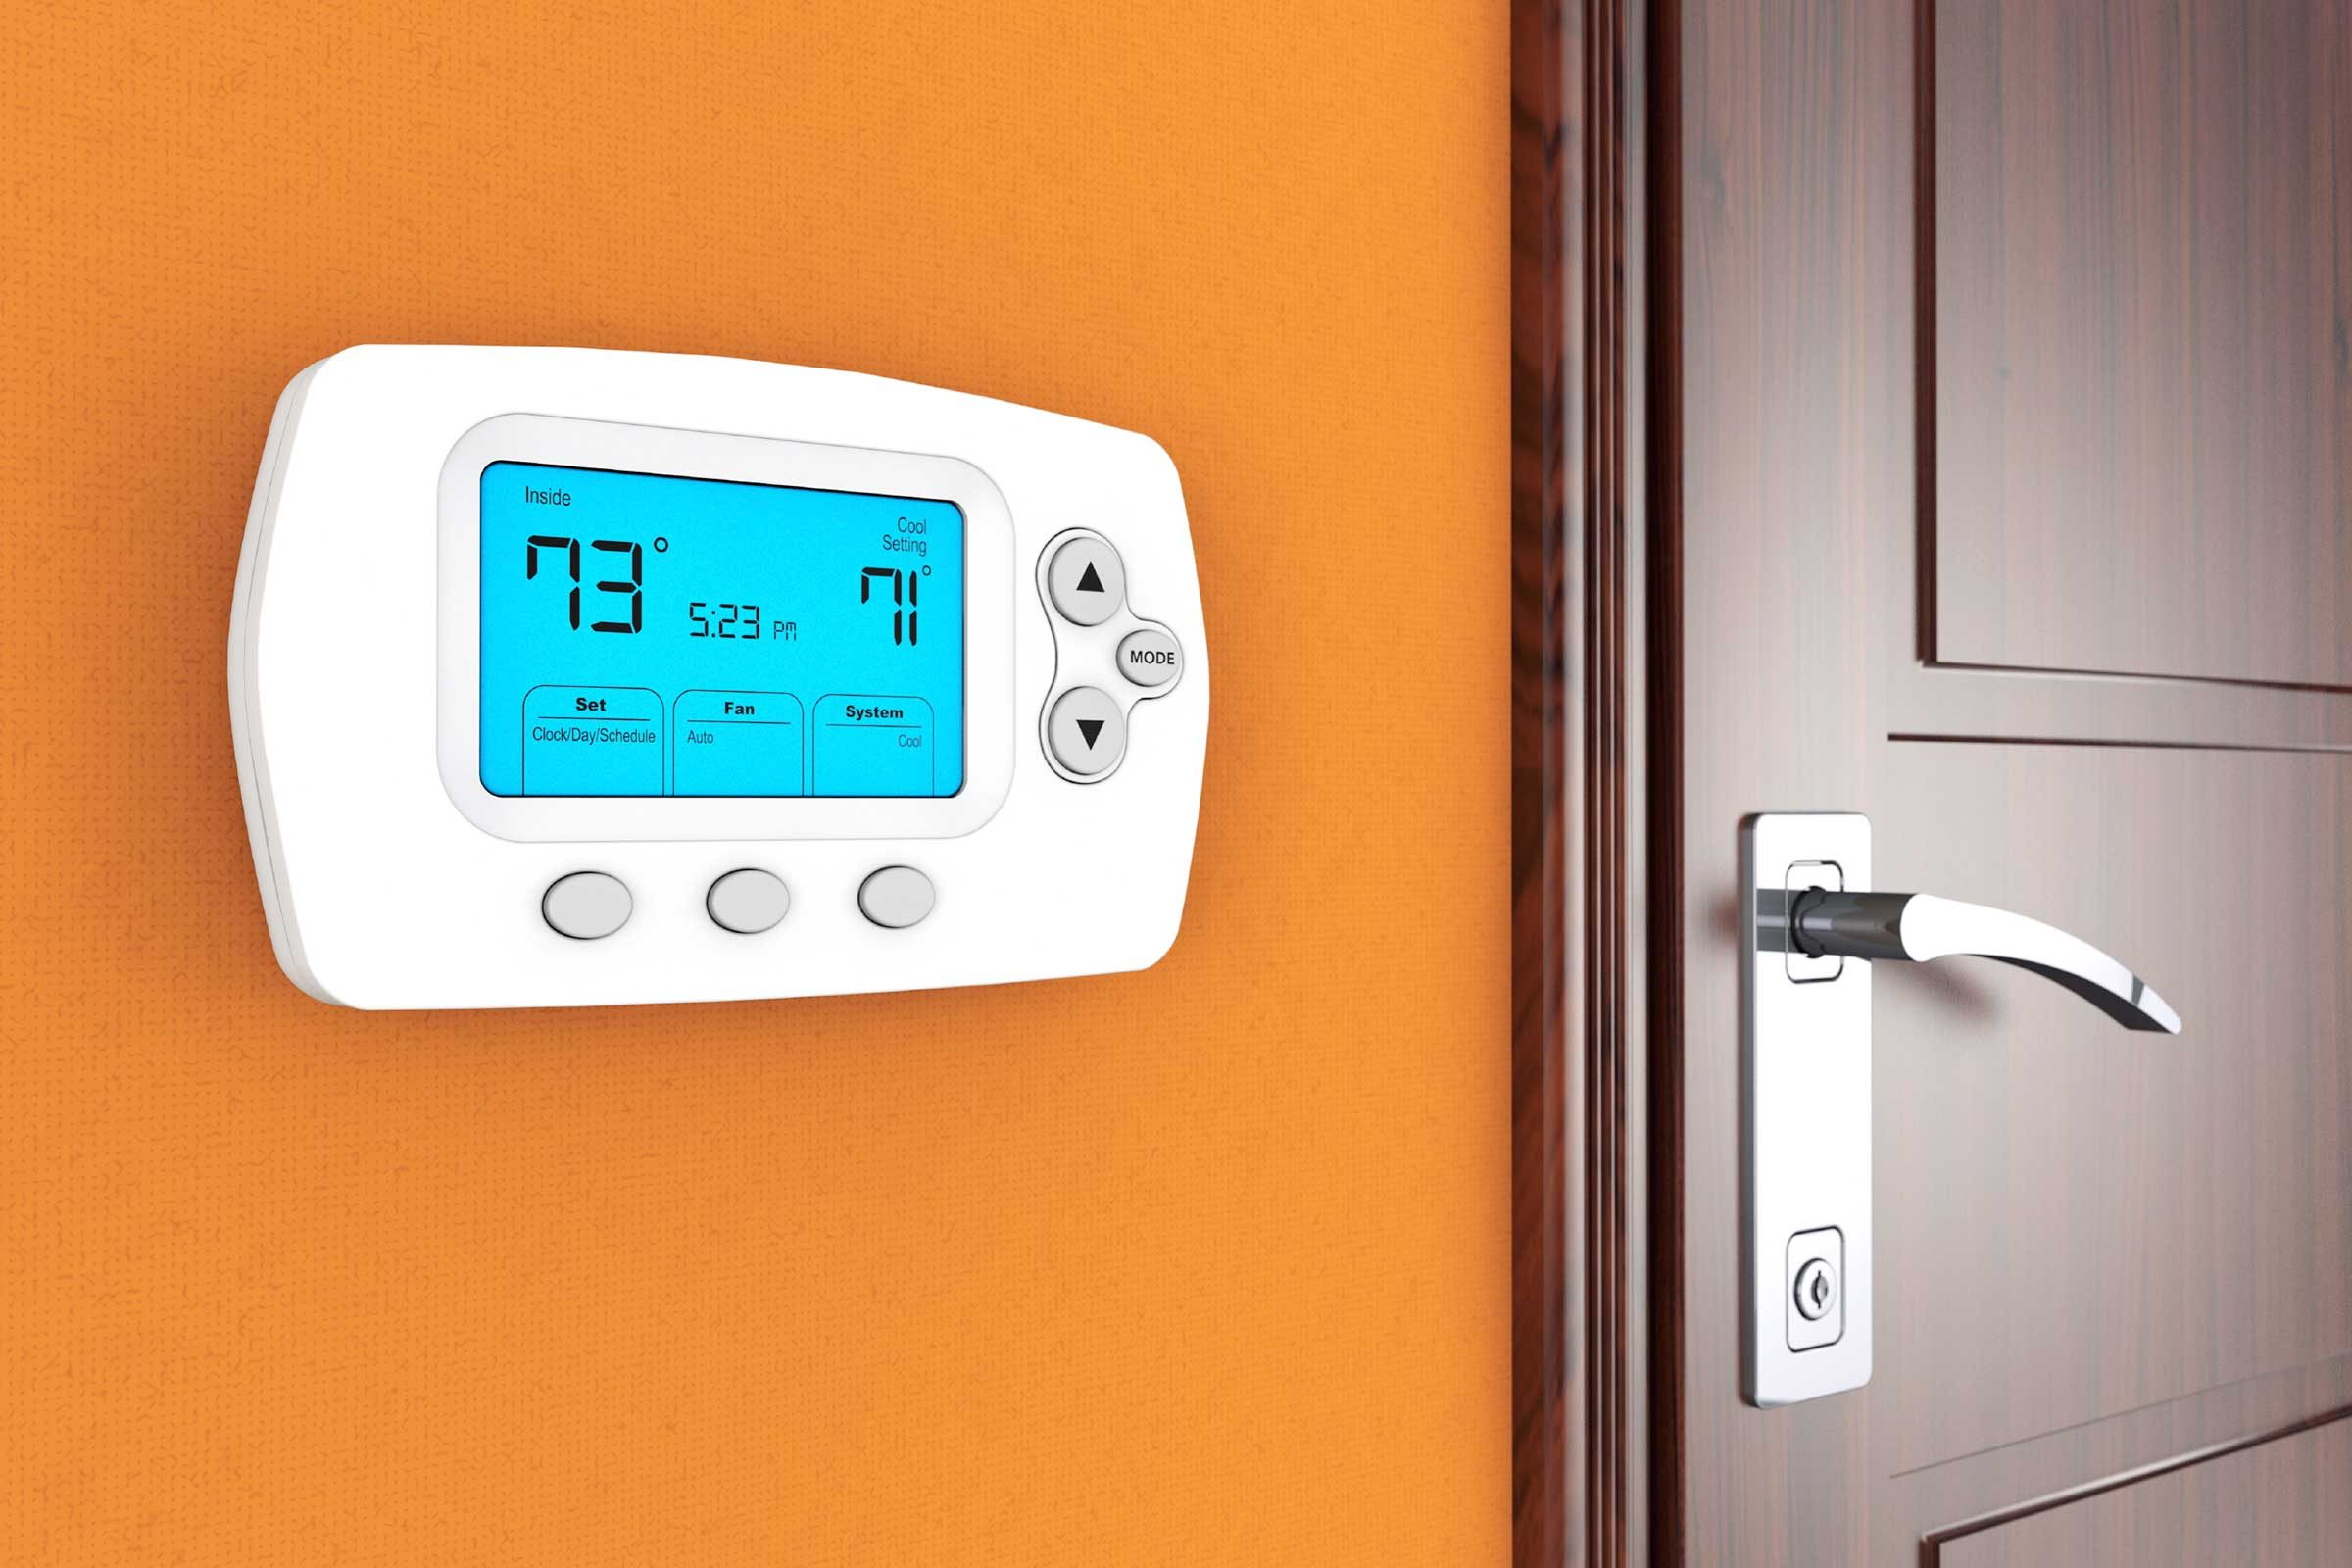 Keep your thermostat set above 65°F in the winter